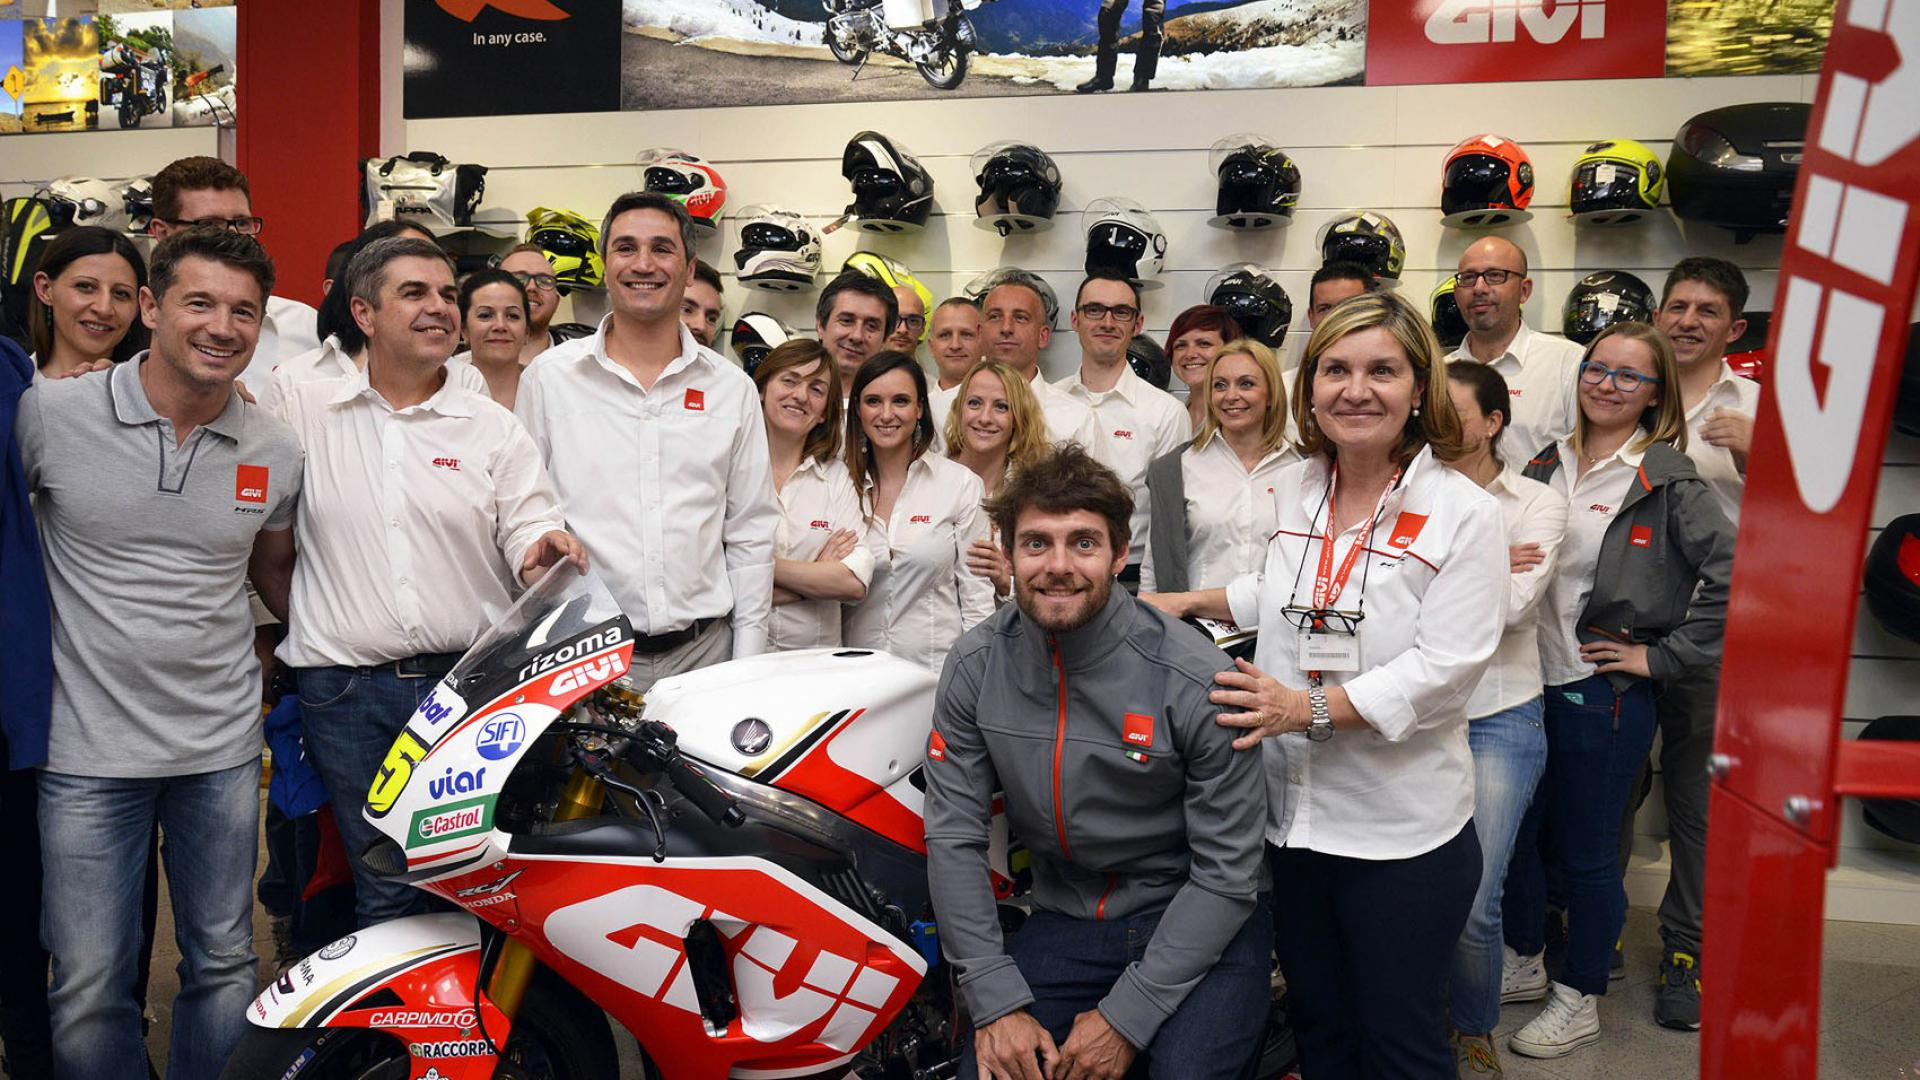 GIVI+and+LCR+Honda+celebrate+250+races+together